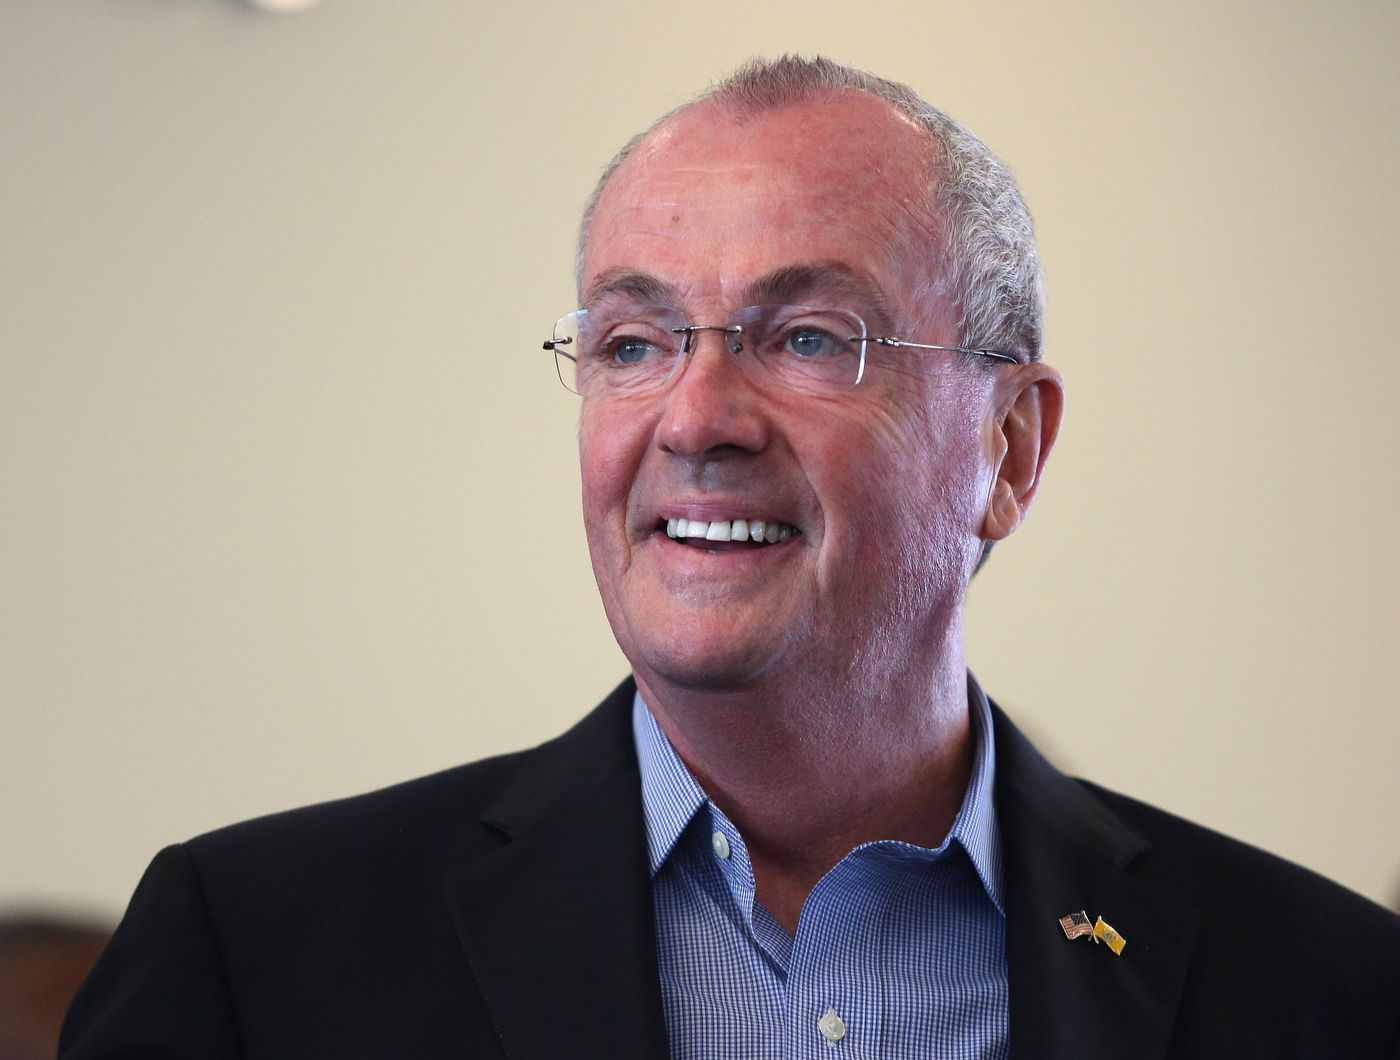 N.J. just reached this education milestone, Murphy says